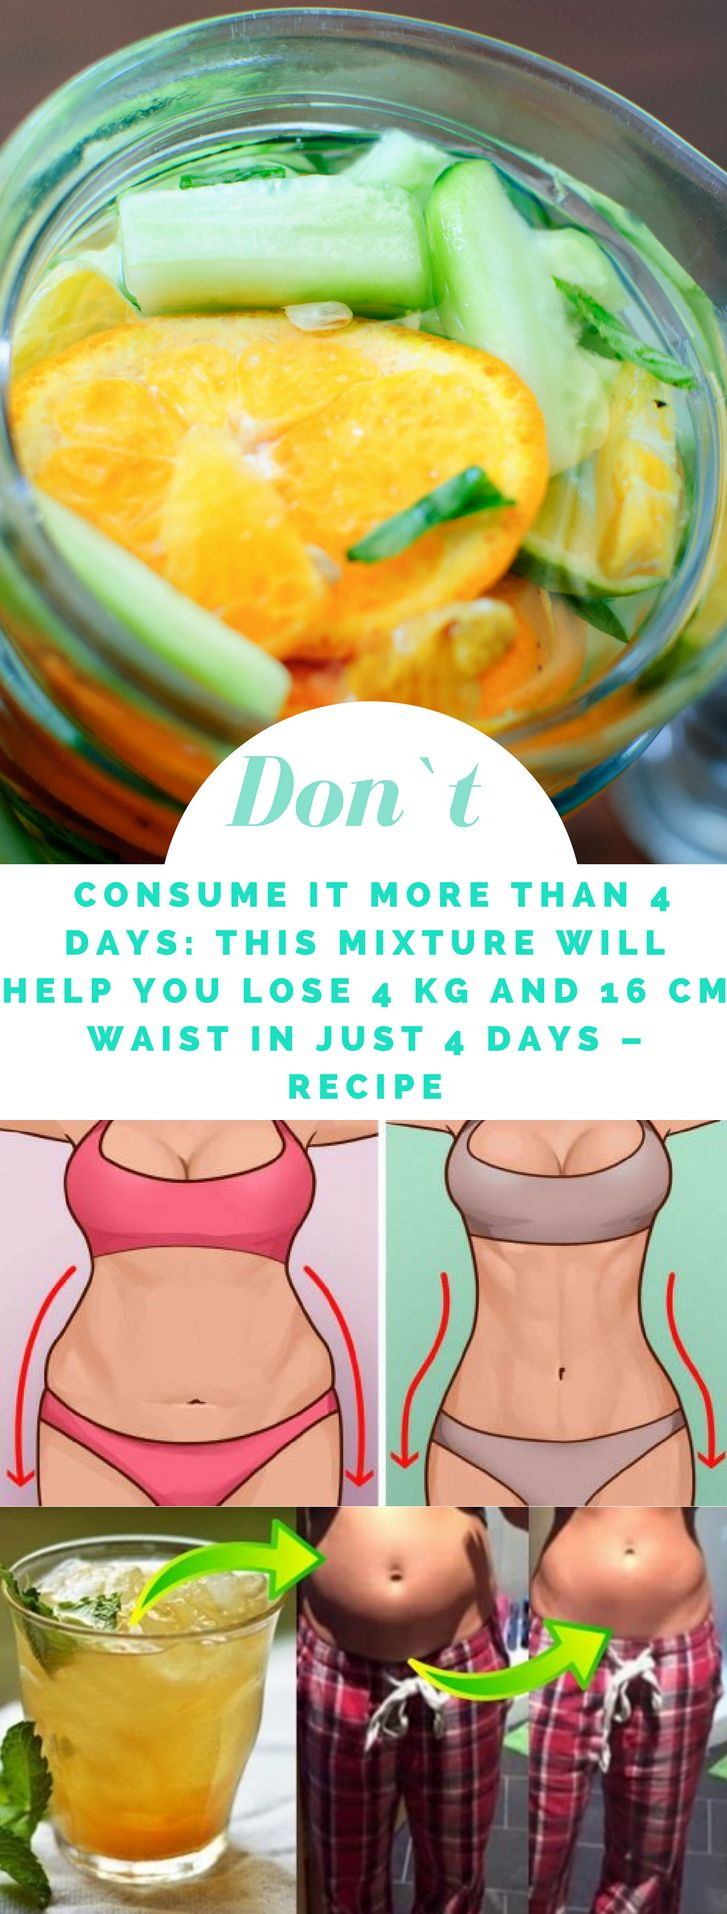 Dont Consume It More Than 4 Days: This Mixture Will Help You Lose 4 kg And 16 cm Waist In Just 4 Days  Recipe